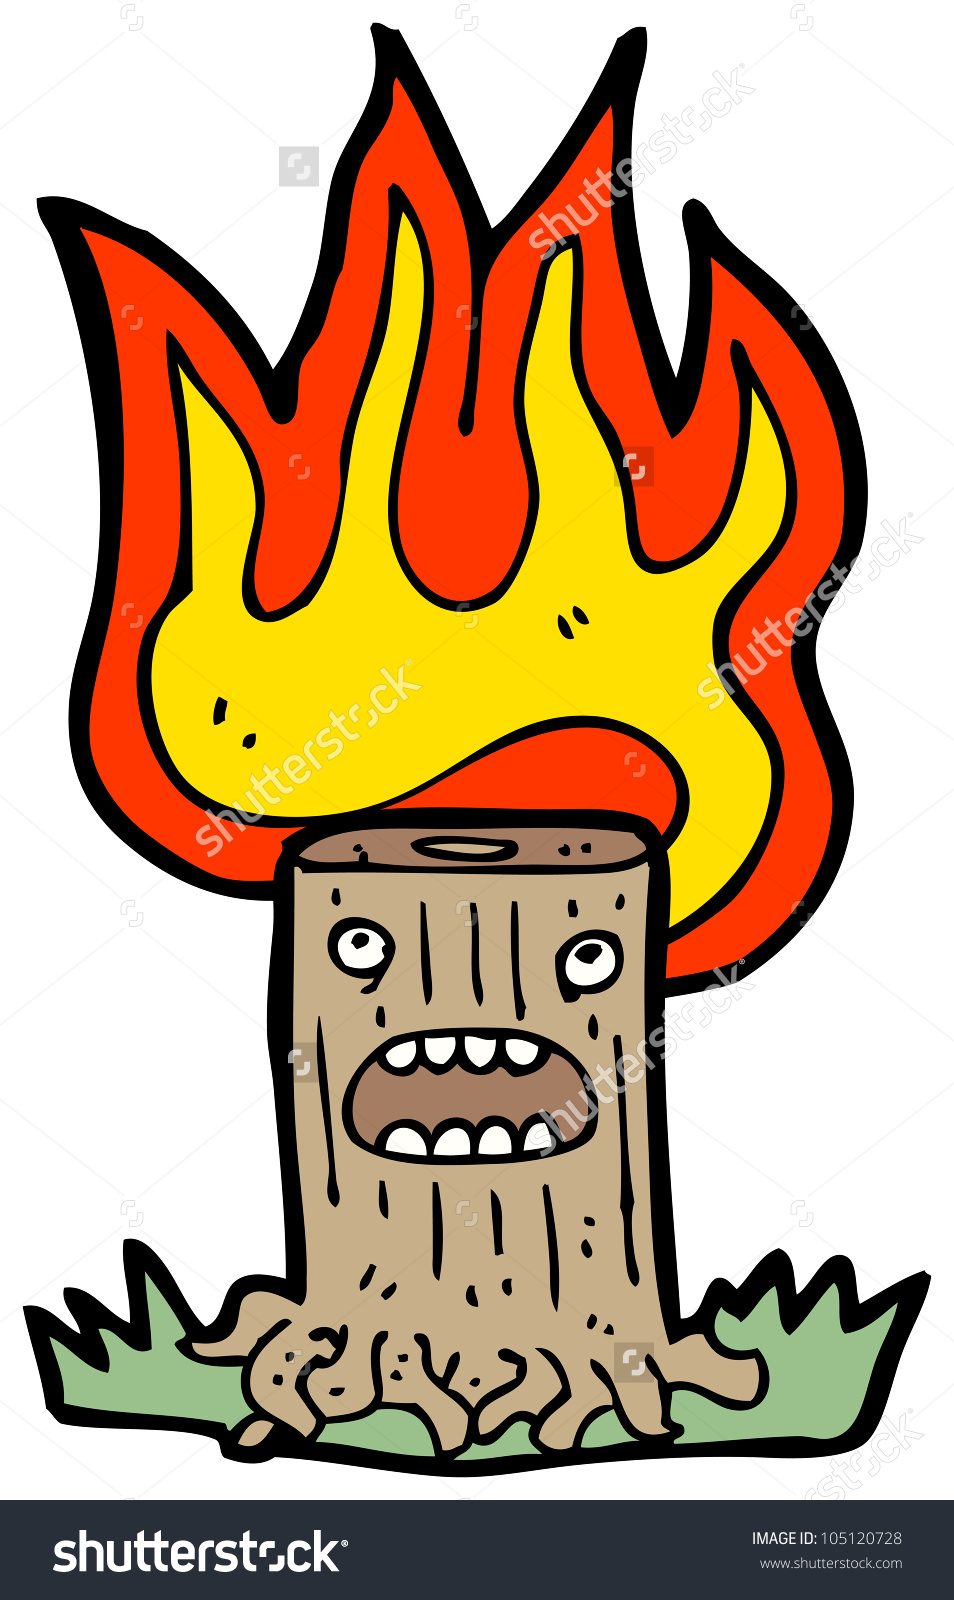 Burning tree clipart.